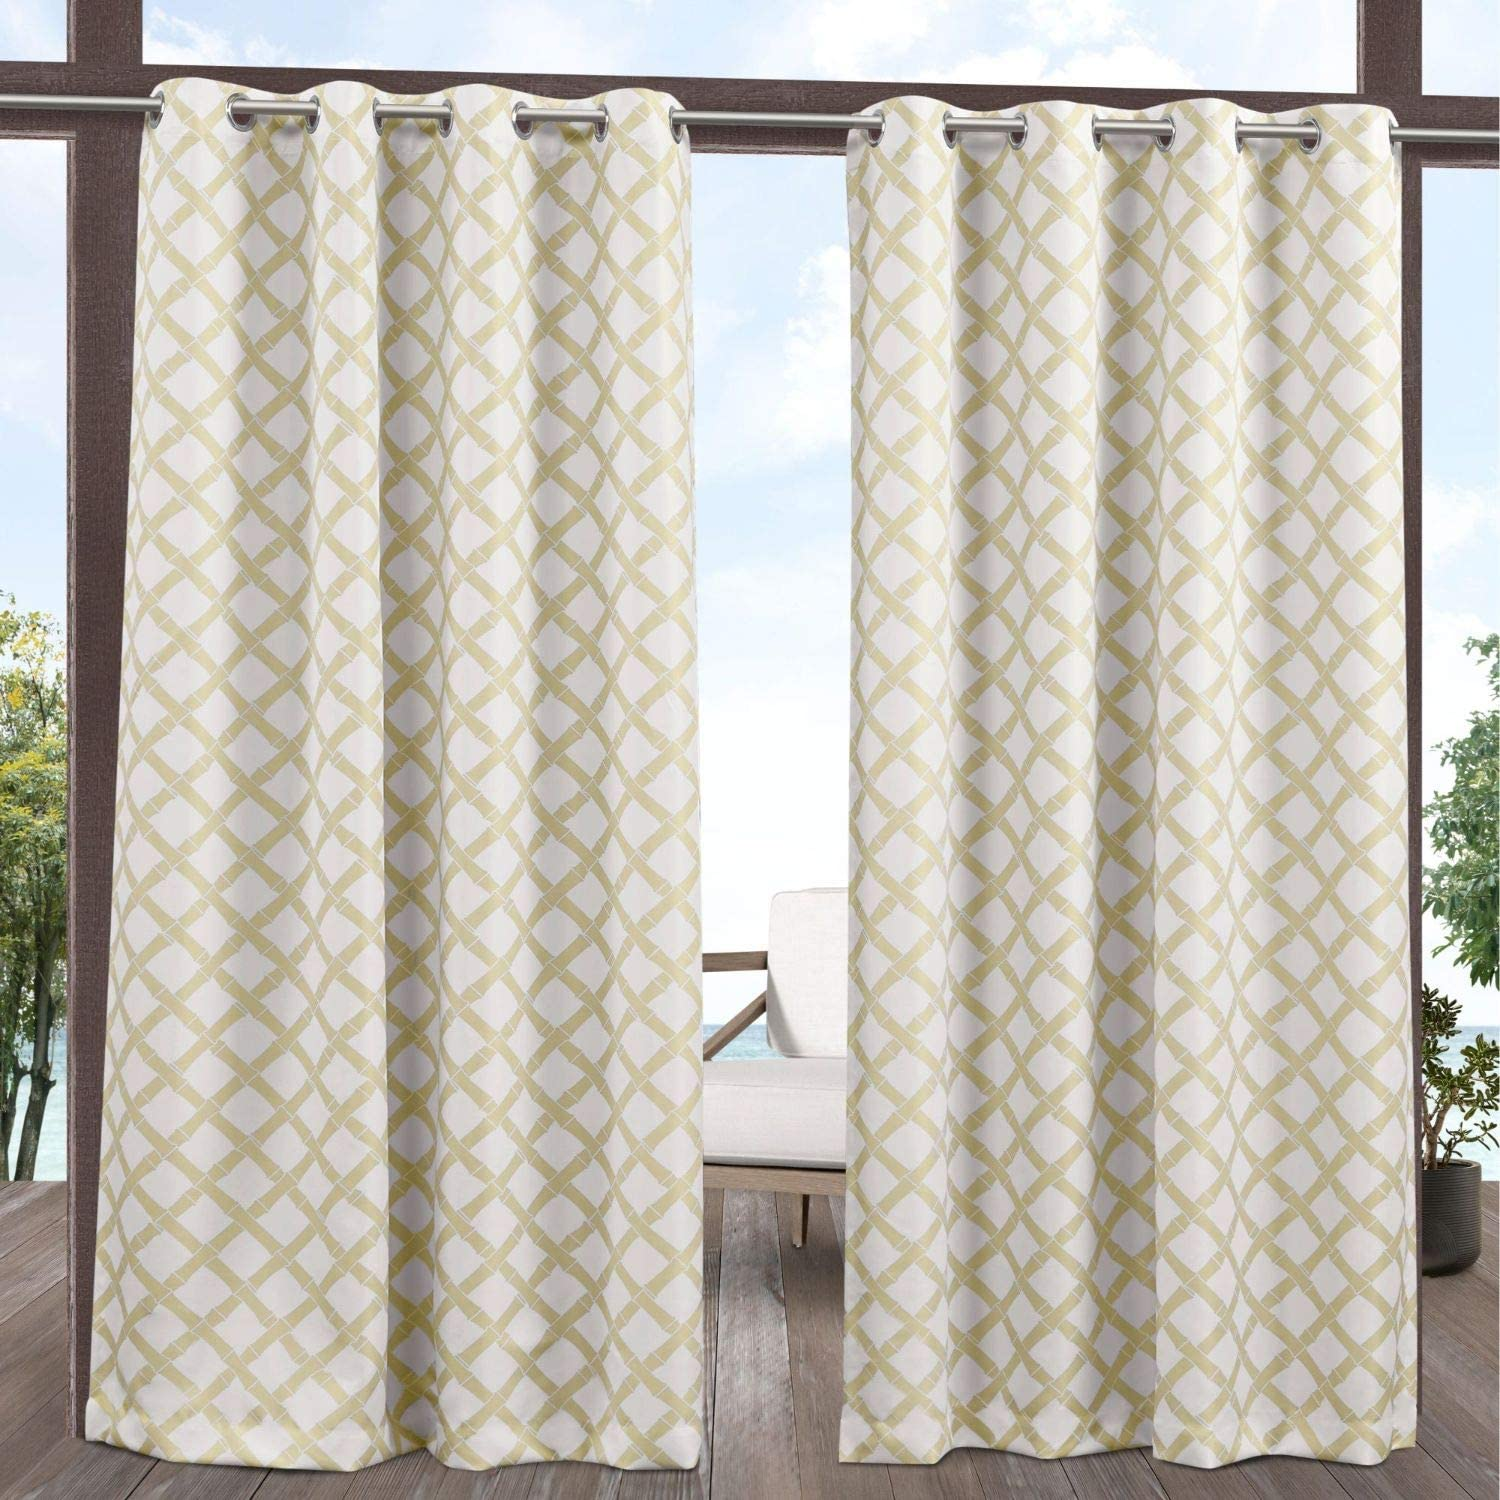 Exclusive Home Curtains Bamboo Trellis Indoor/Outdoor Light Filtering Grommet Top Curtain Panel Pair, 54x84, Khaki/Ivory